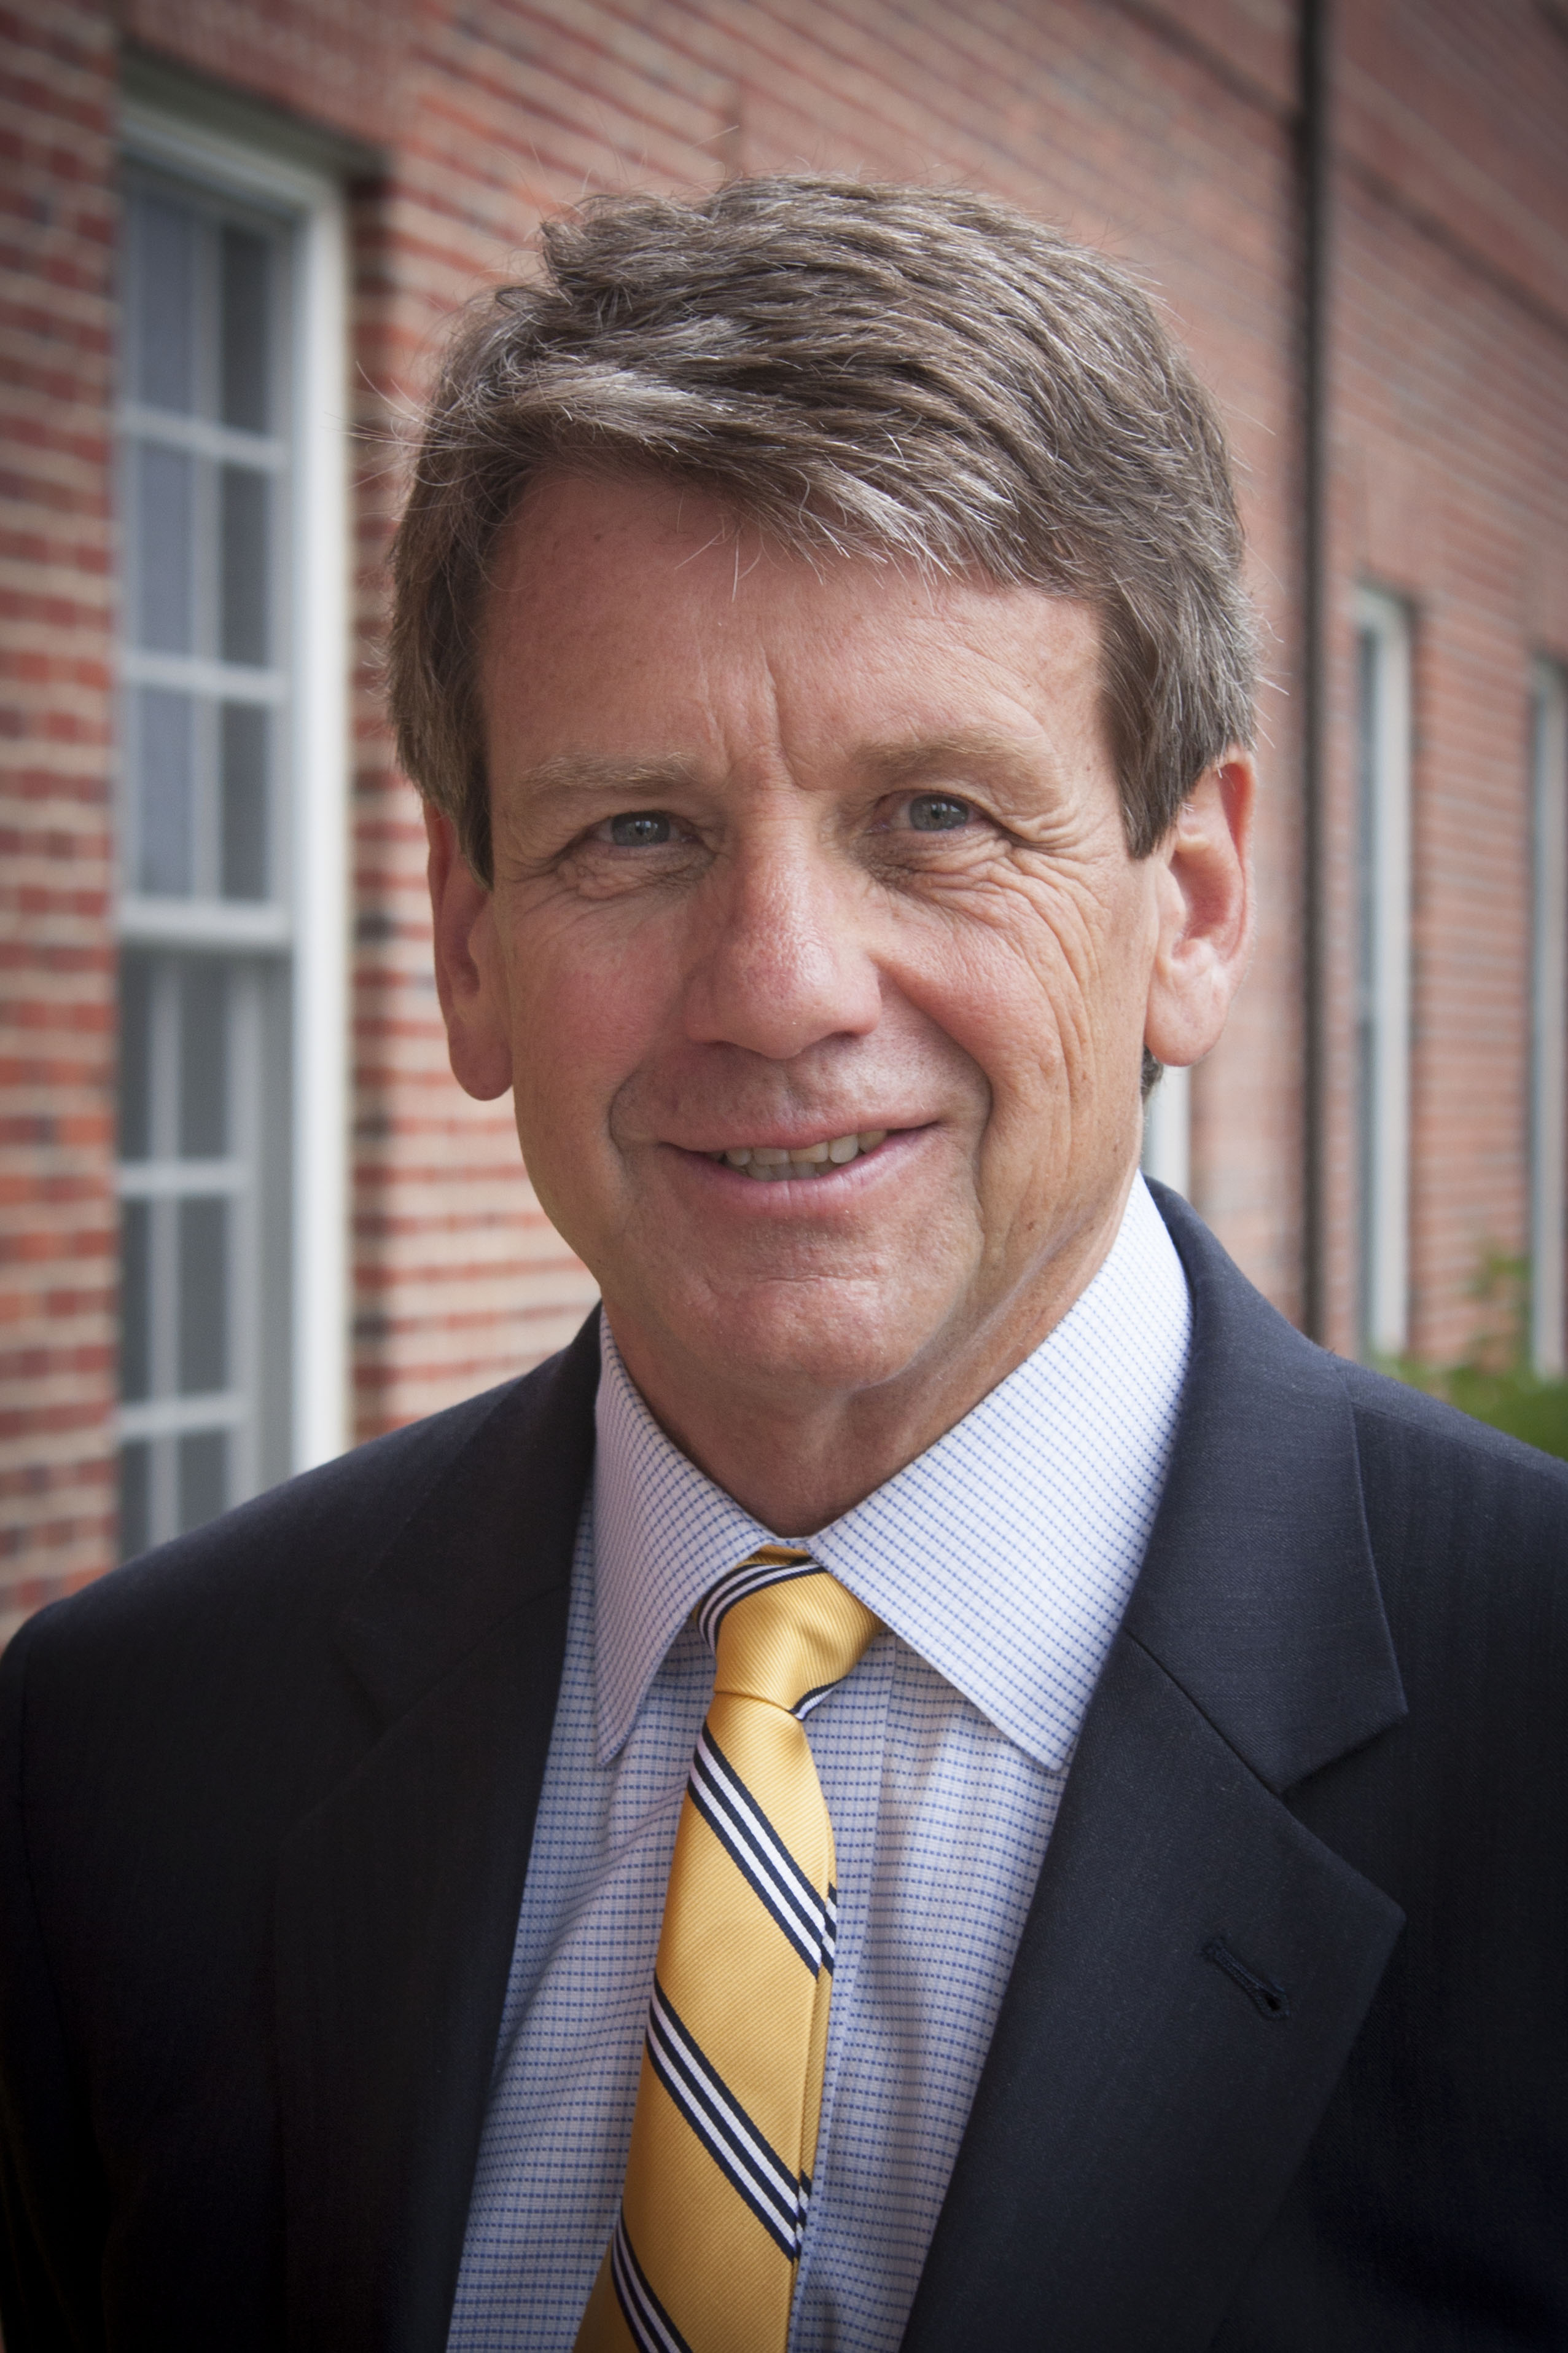 Michael_Farris_2016_Faculty_Picture.jpg